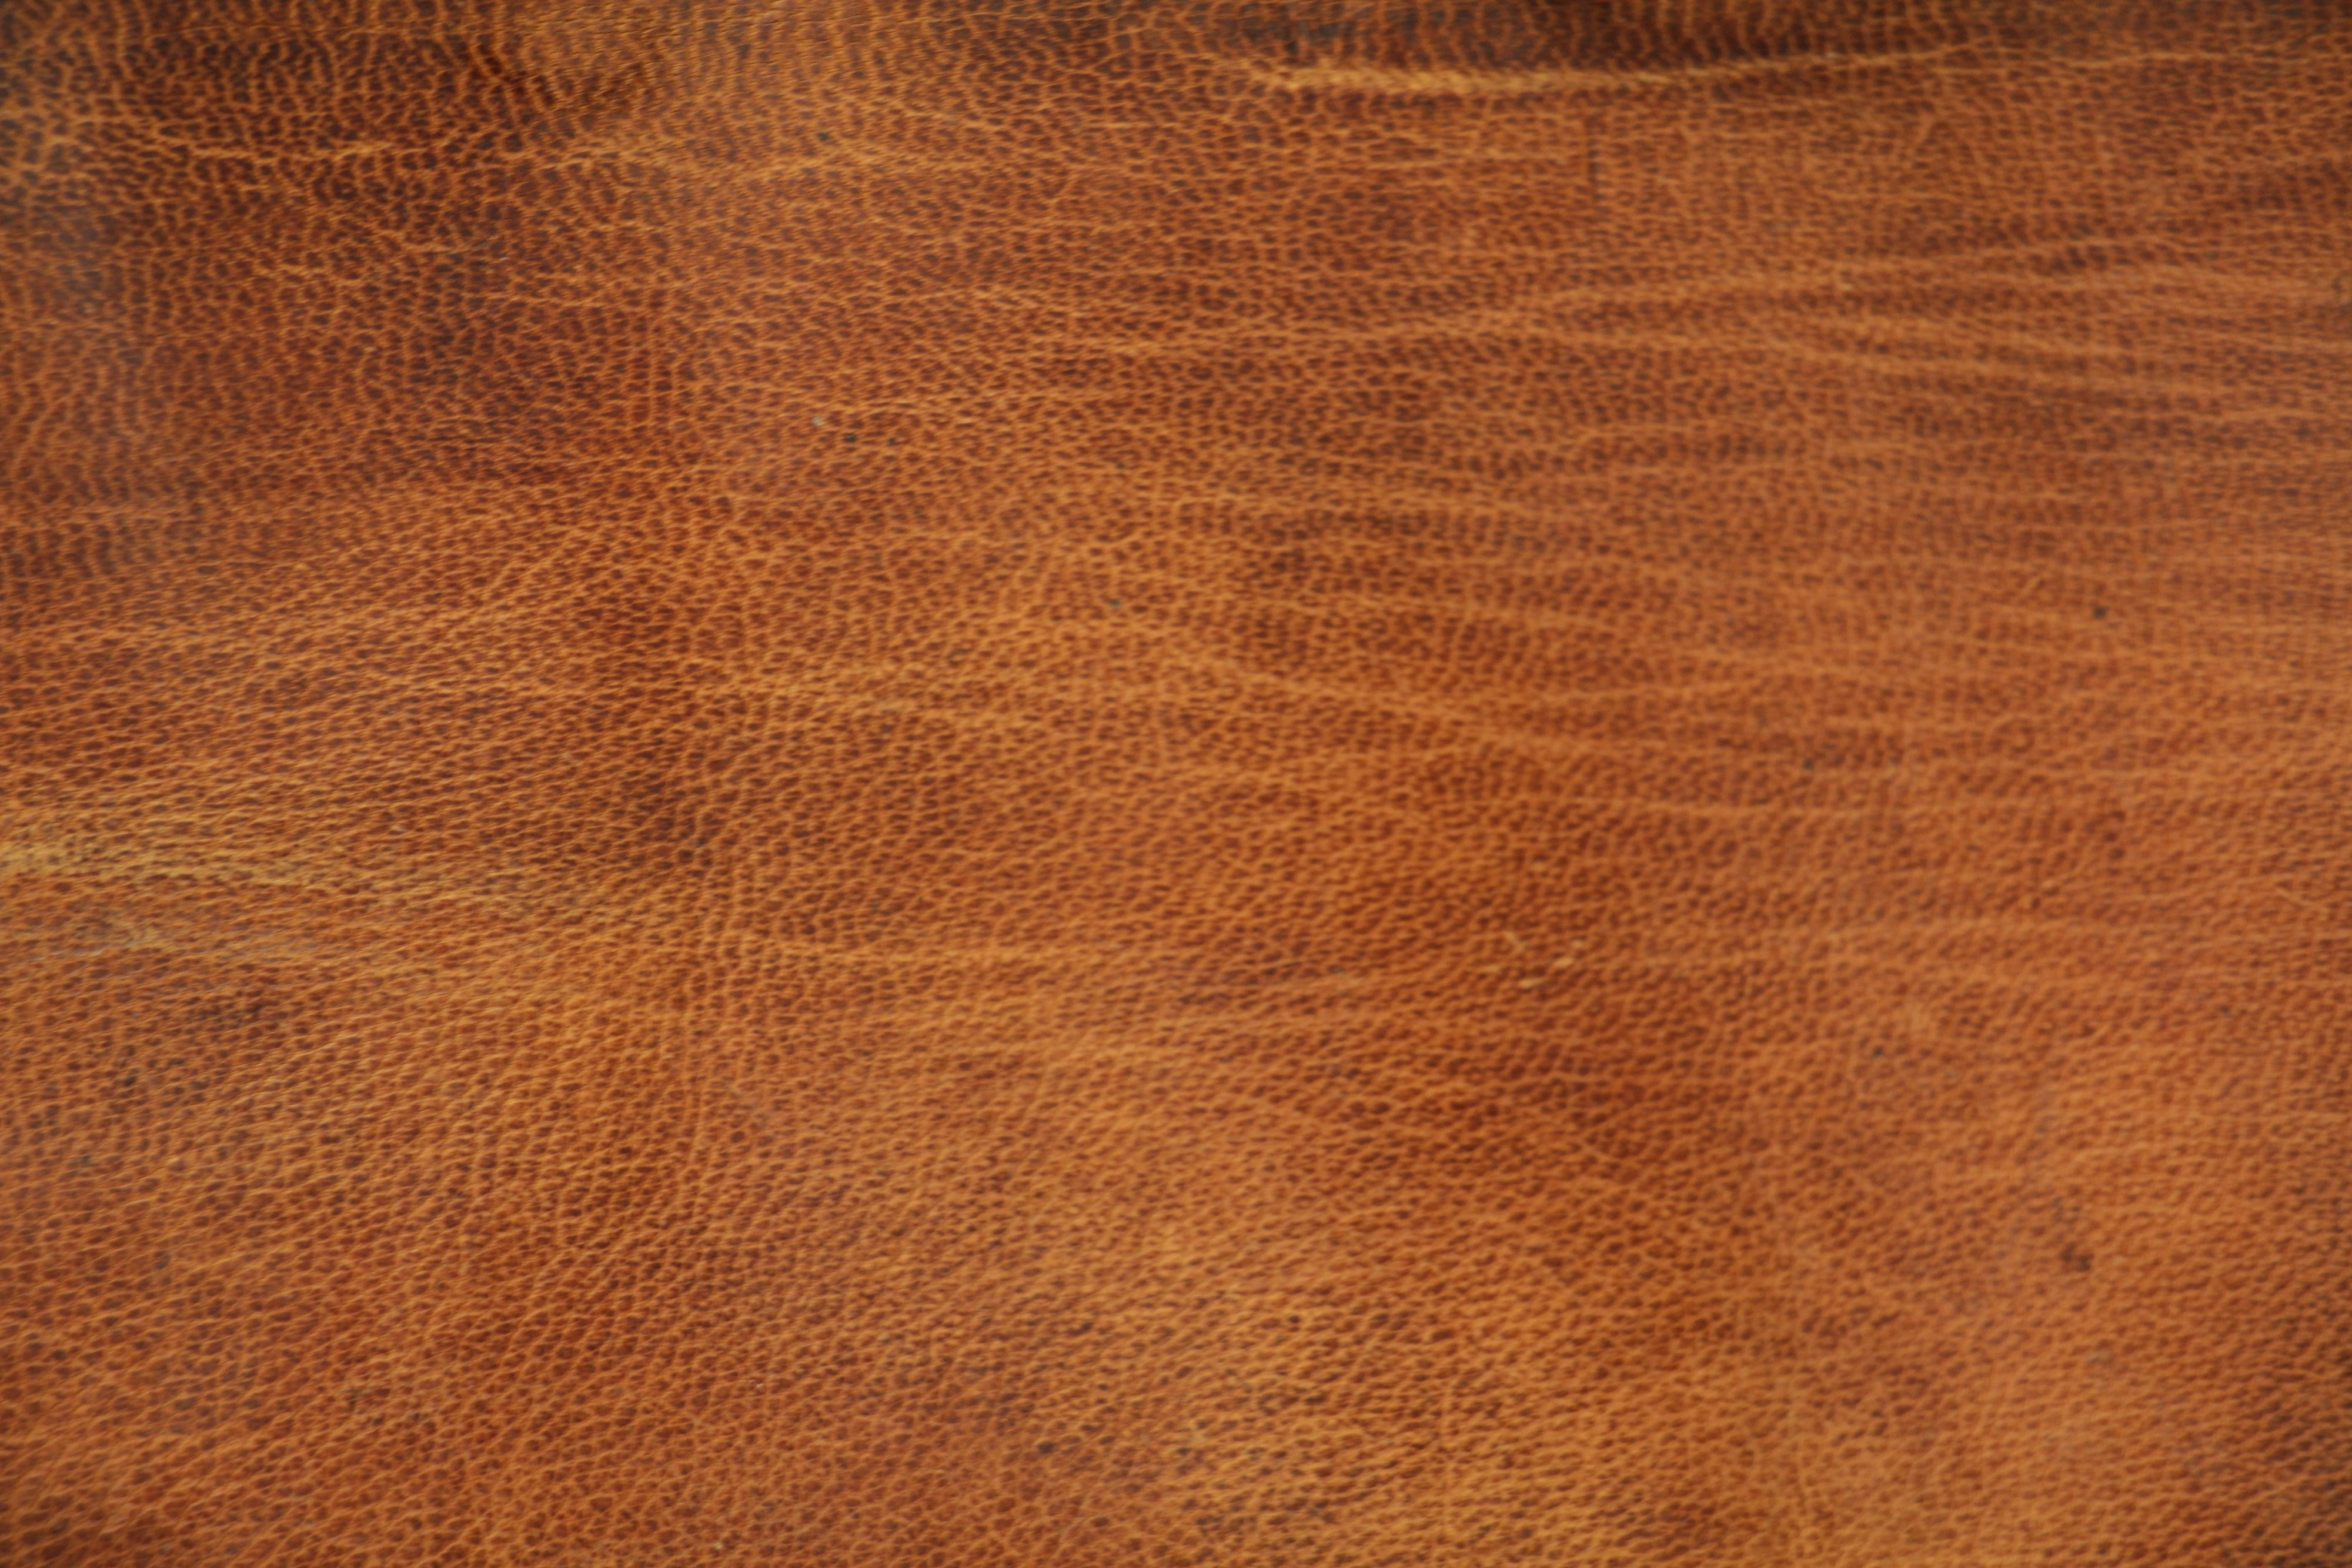 Image result for light brown leather texture | Hospitality ...